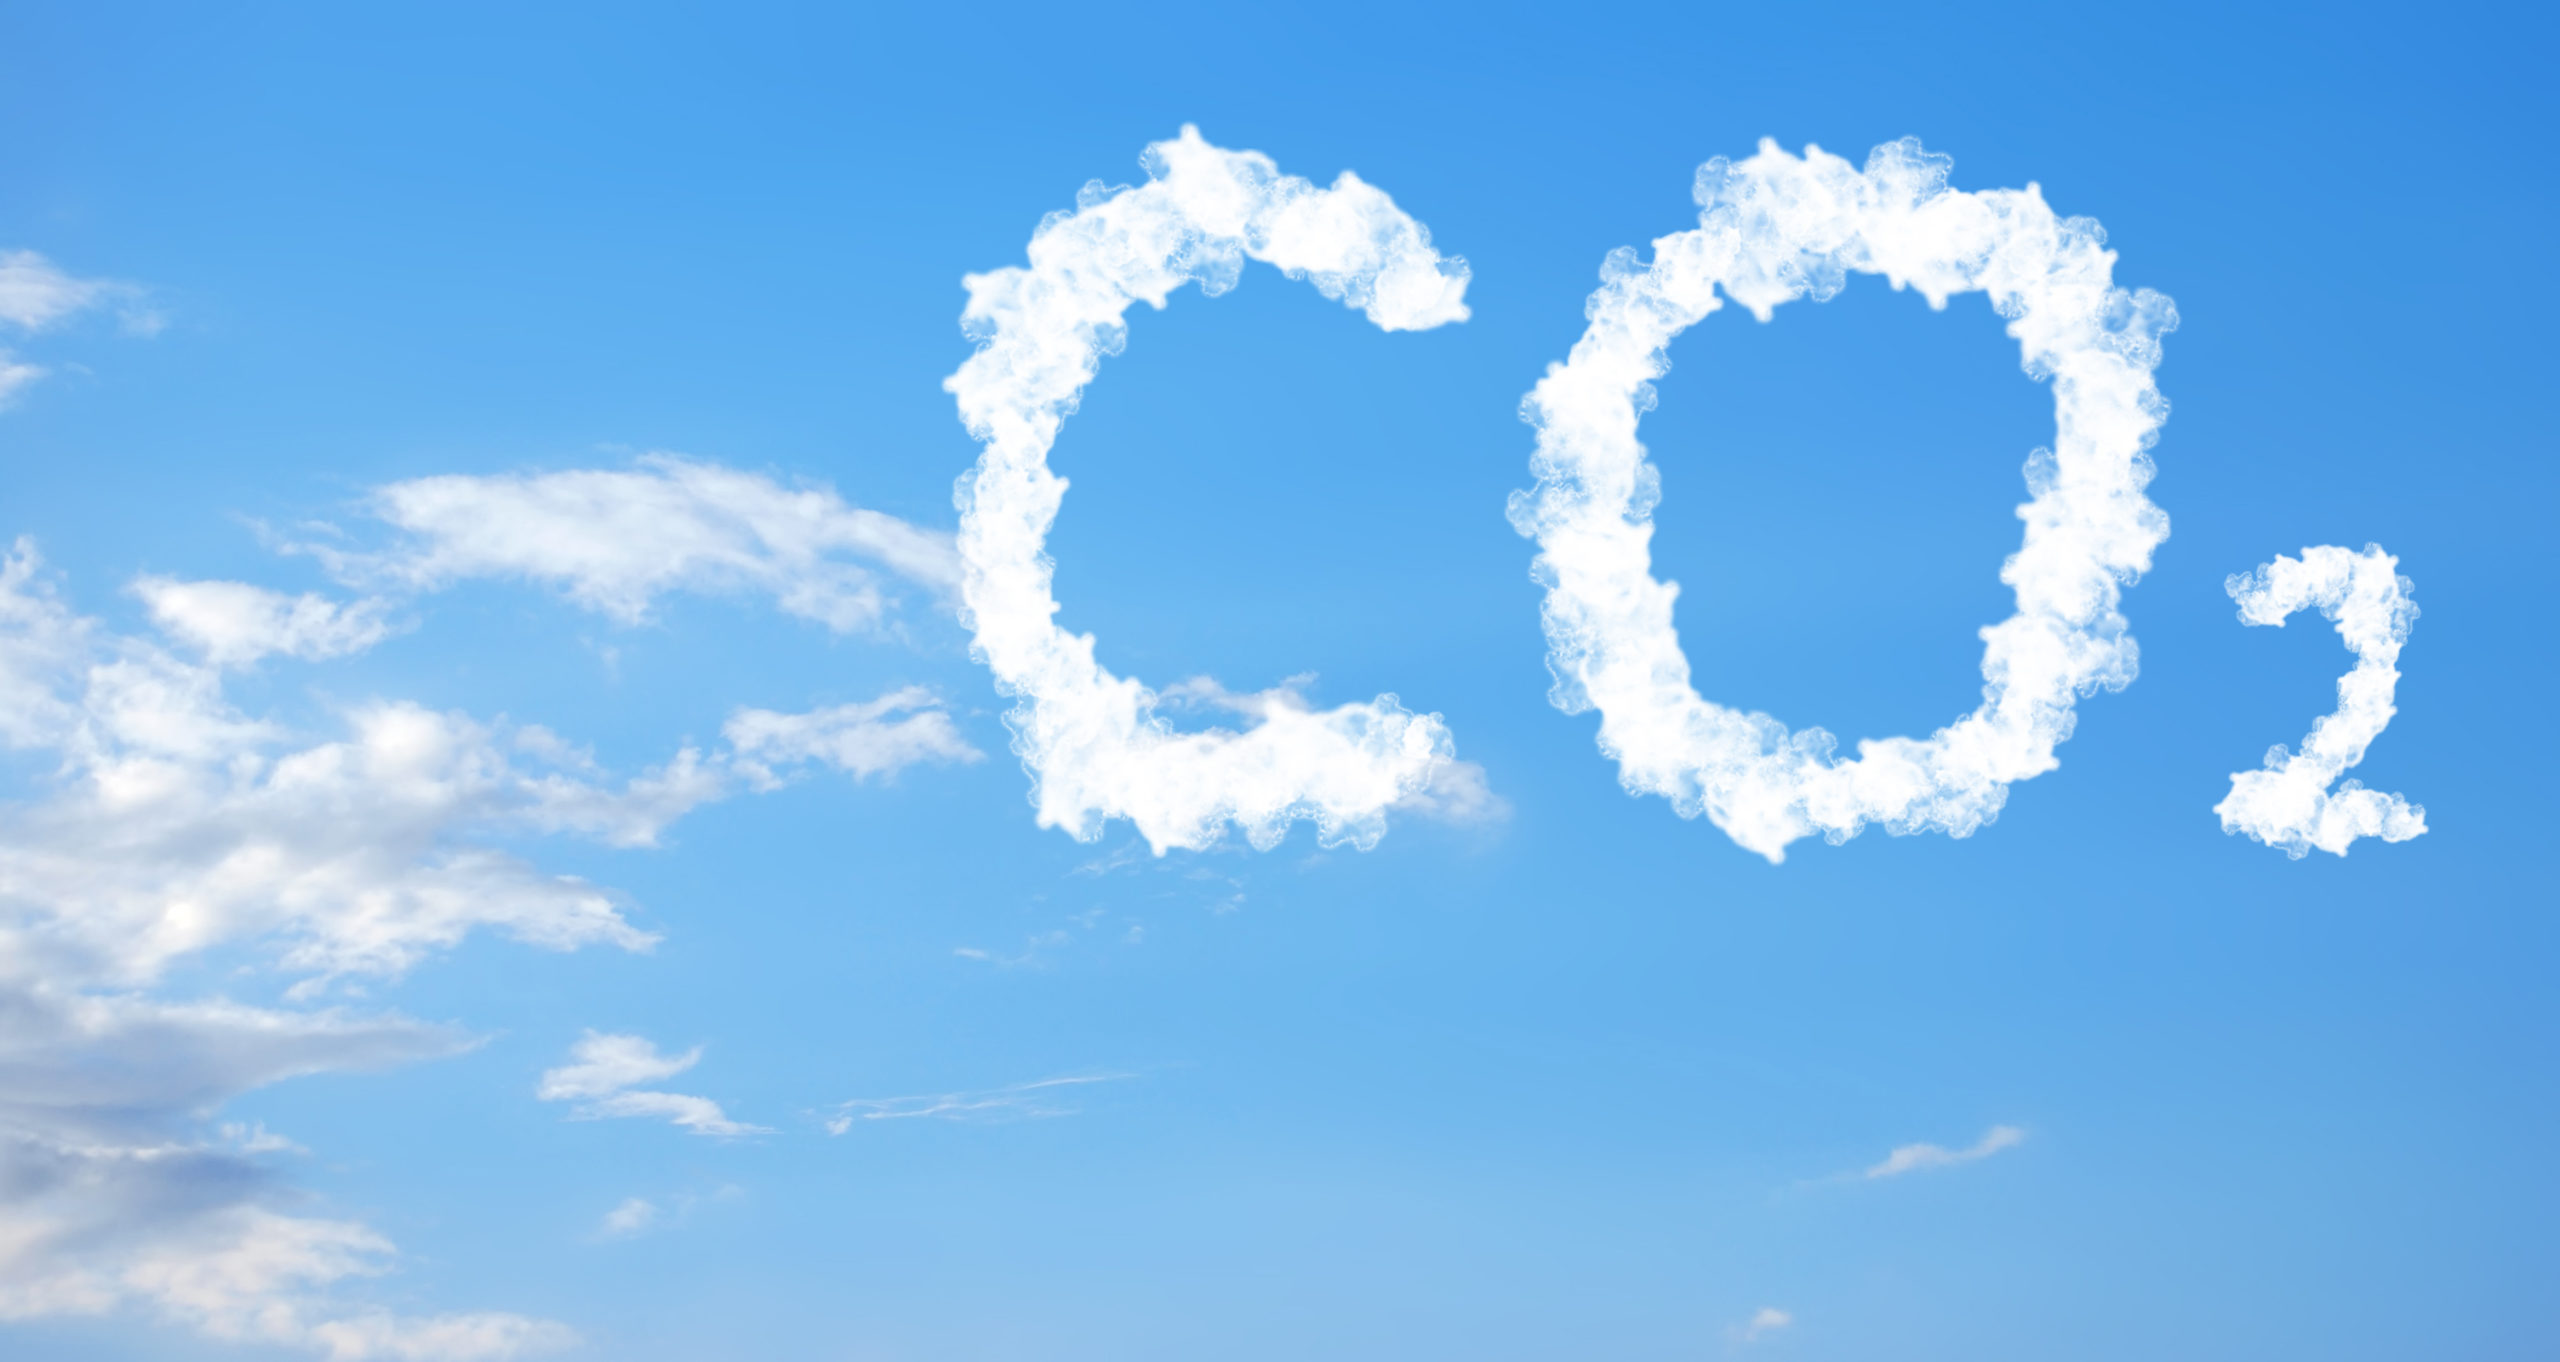 Sky,With,Co2,Pollution,,Smog,Is,Bad